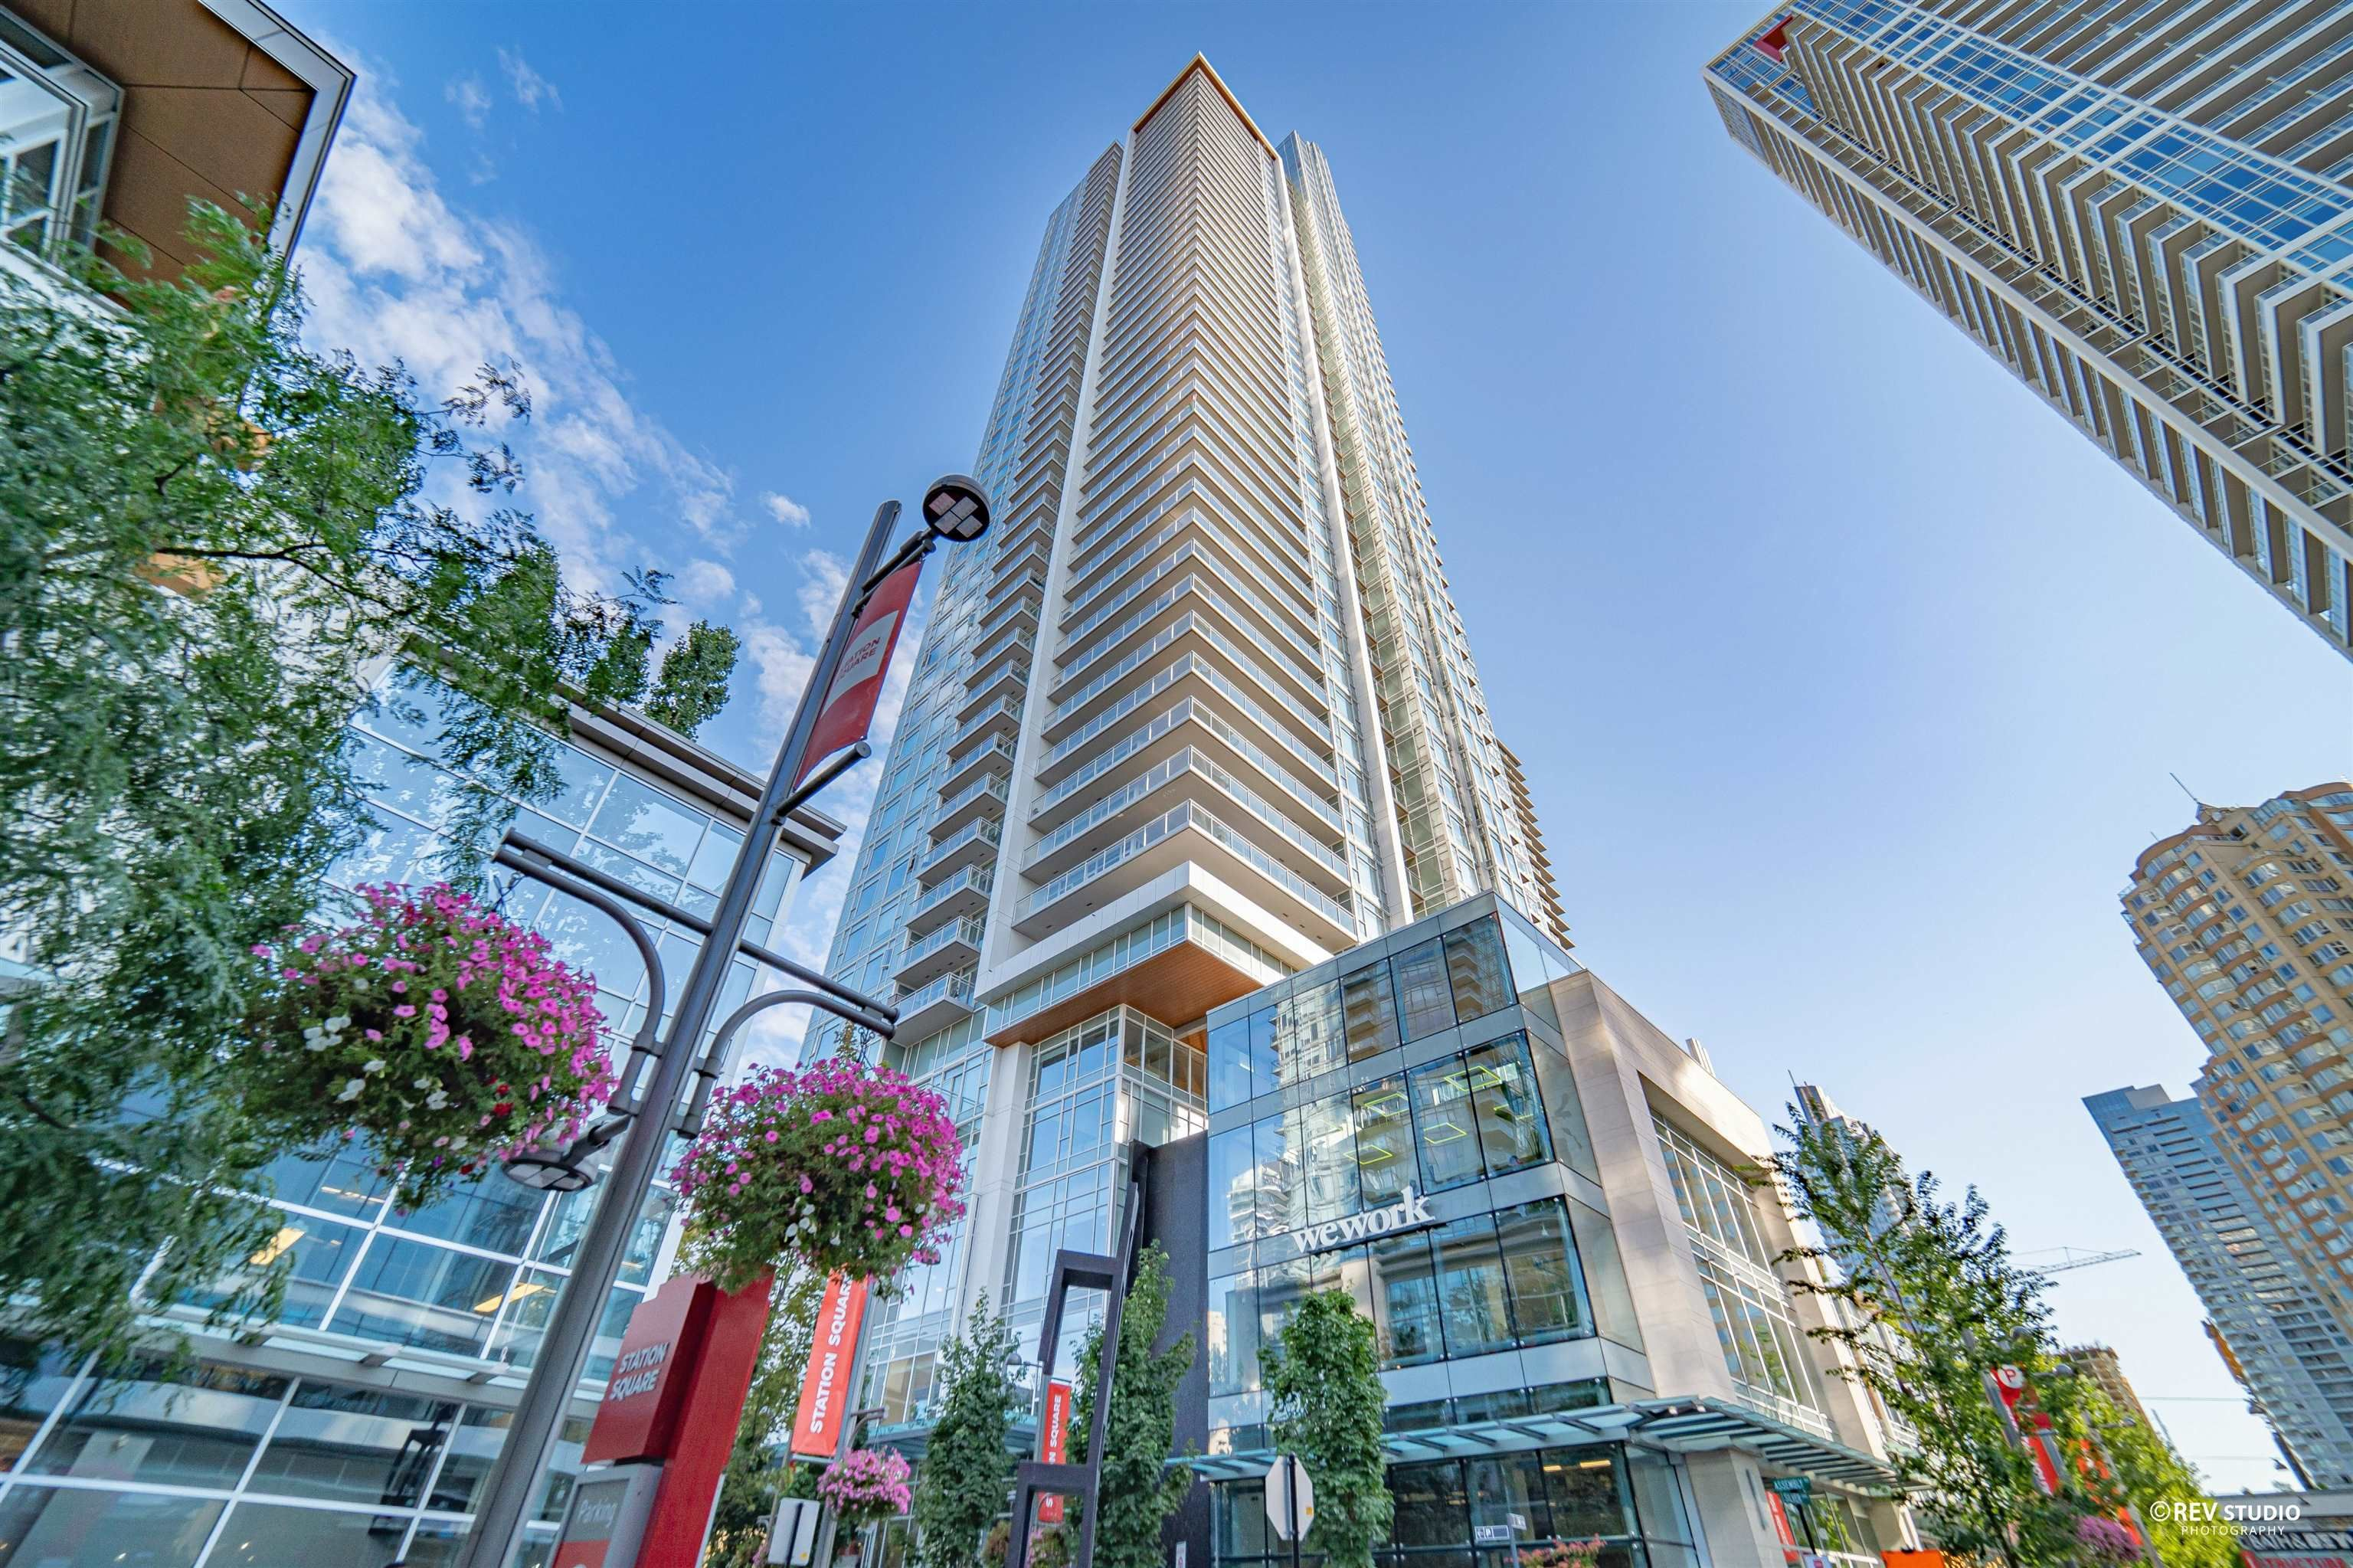 Main Photo: 2505 4670 ASSEMBLY Way in Burnaby: Metrotown Condo for sale (Burnaby South)  : MLS®# R2613817